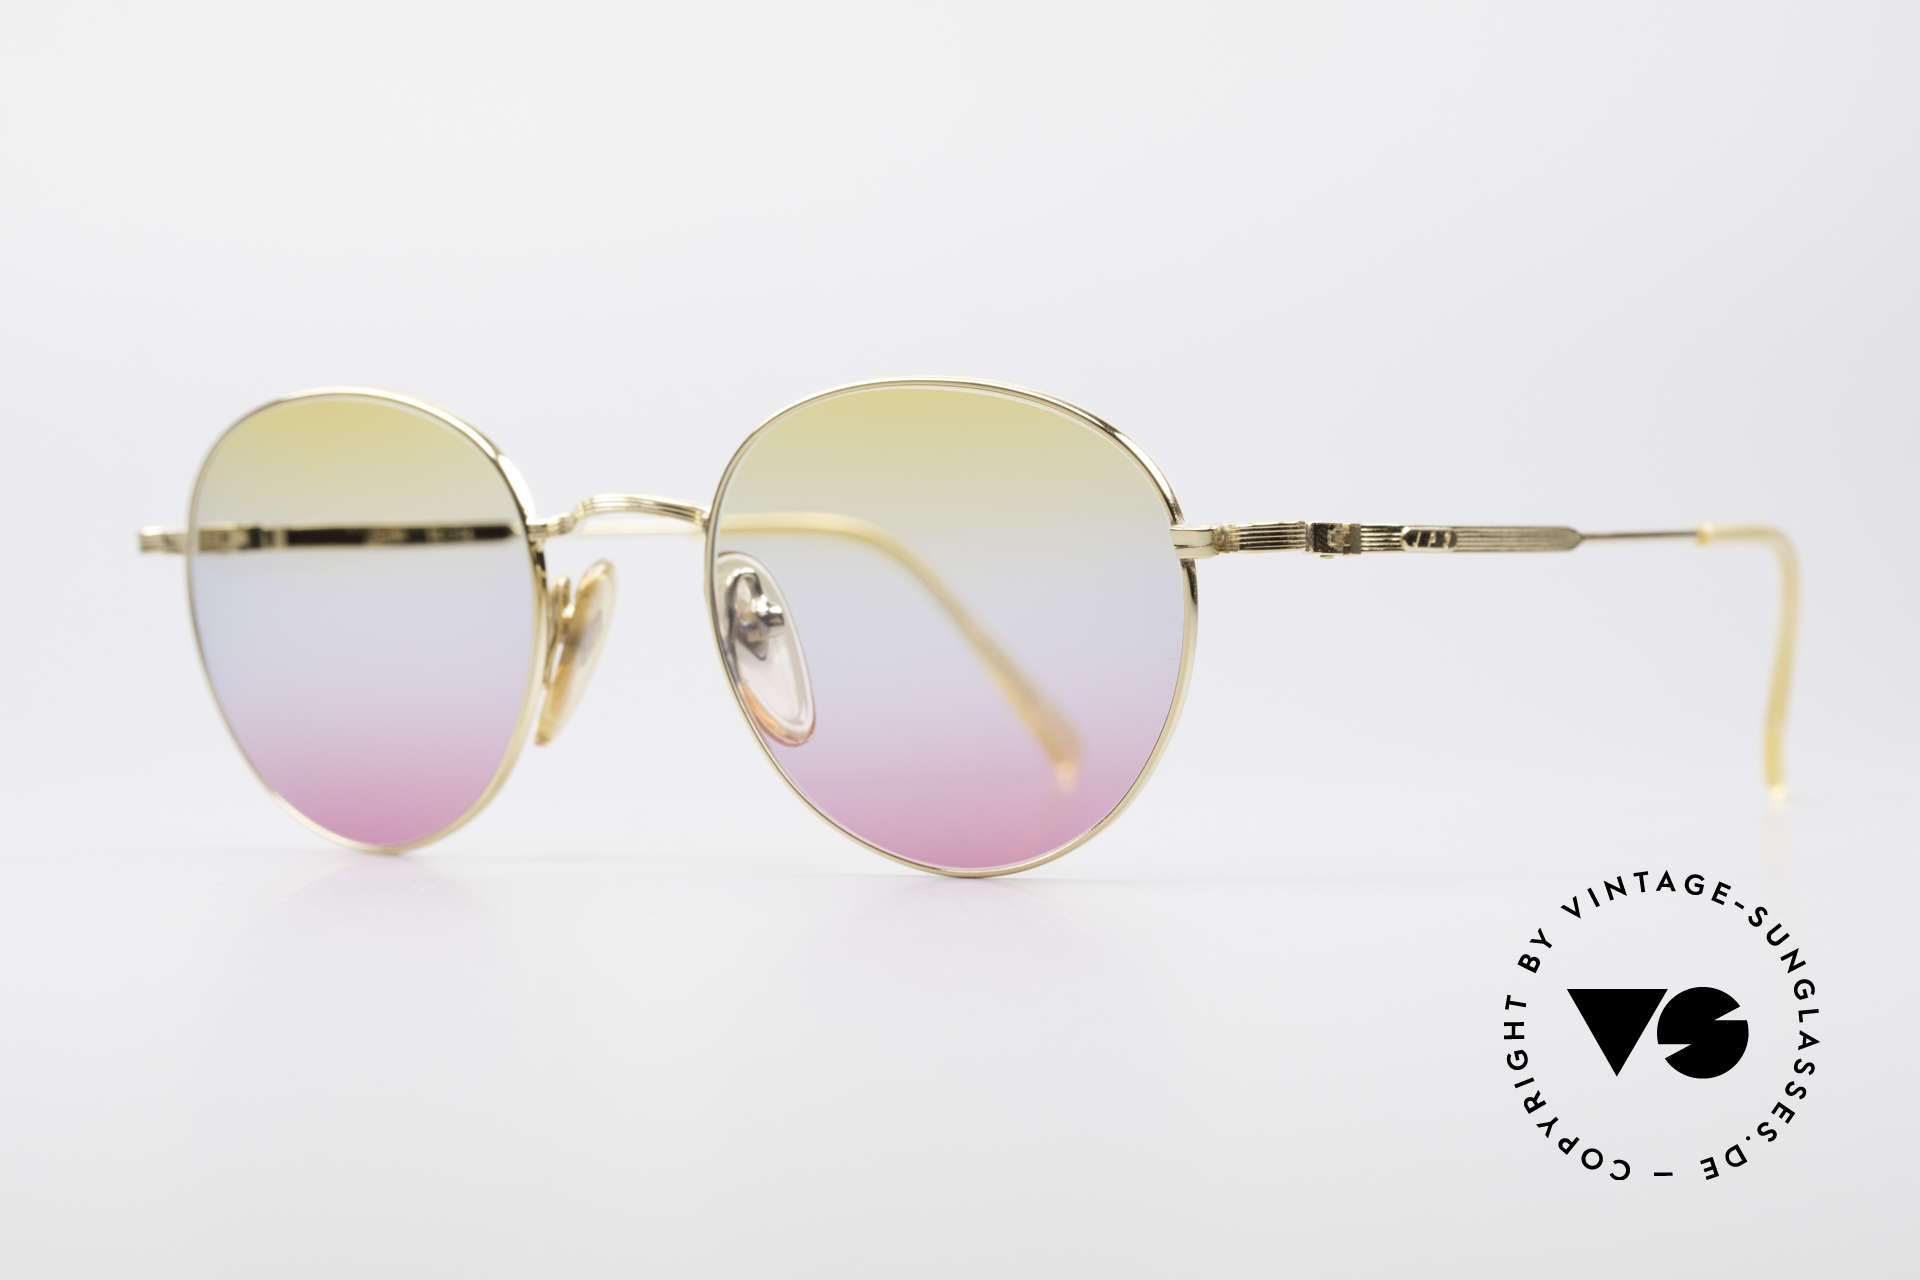 Jean Paul Gaultier 55-1174 Gold Plated Panto Frame, with fancy tricolored-gradient sun lenses (100% UV), Made for Men and Women